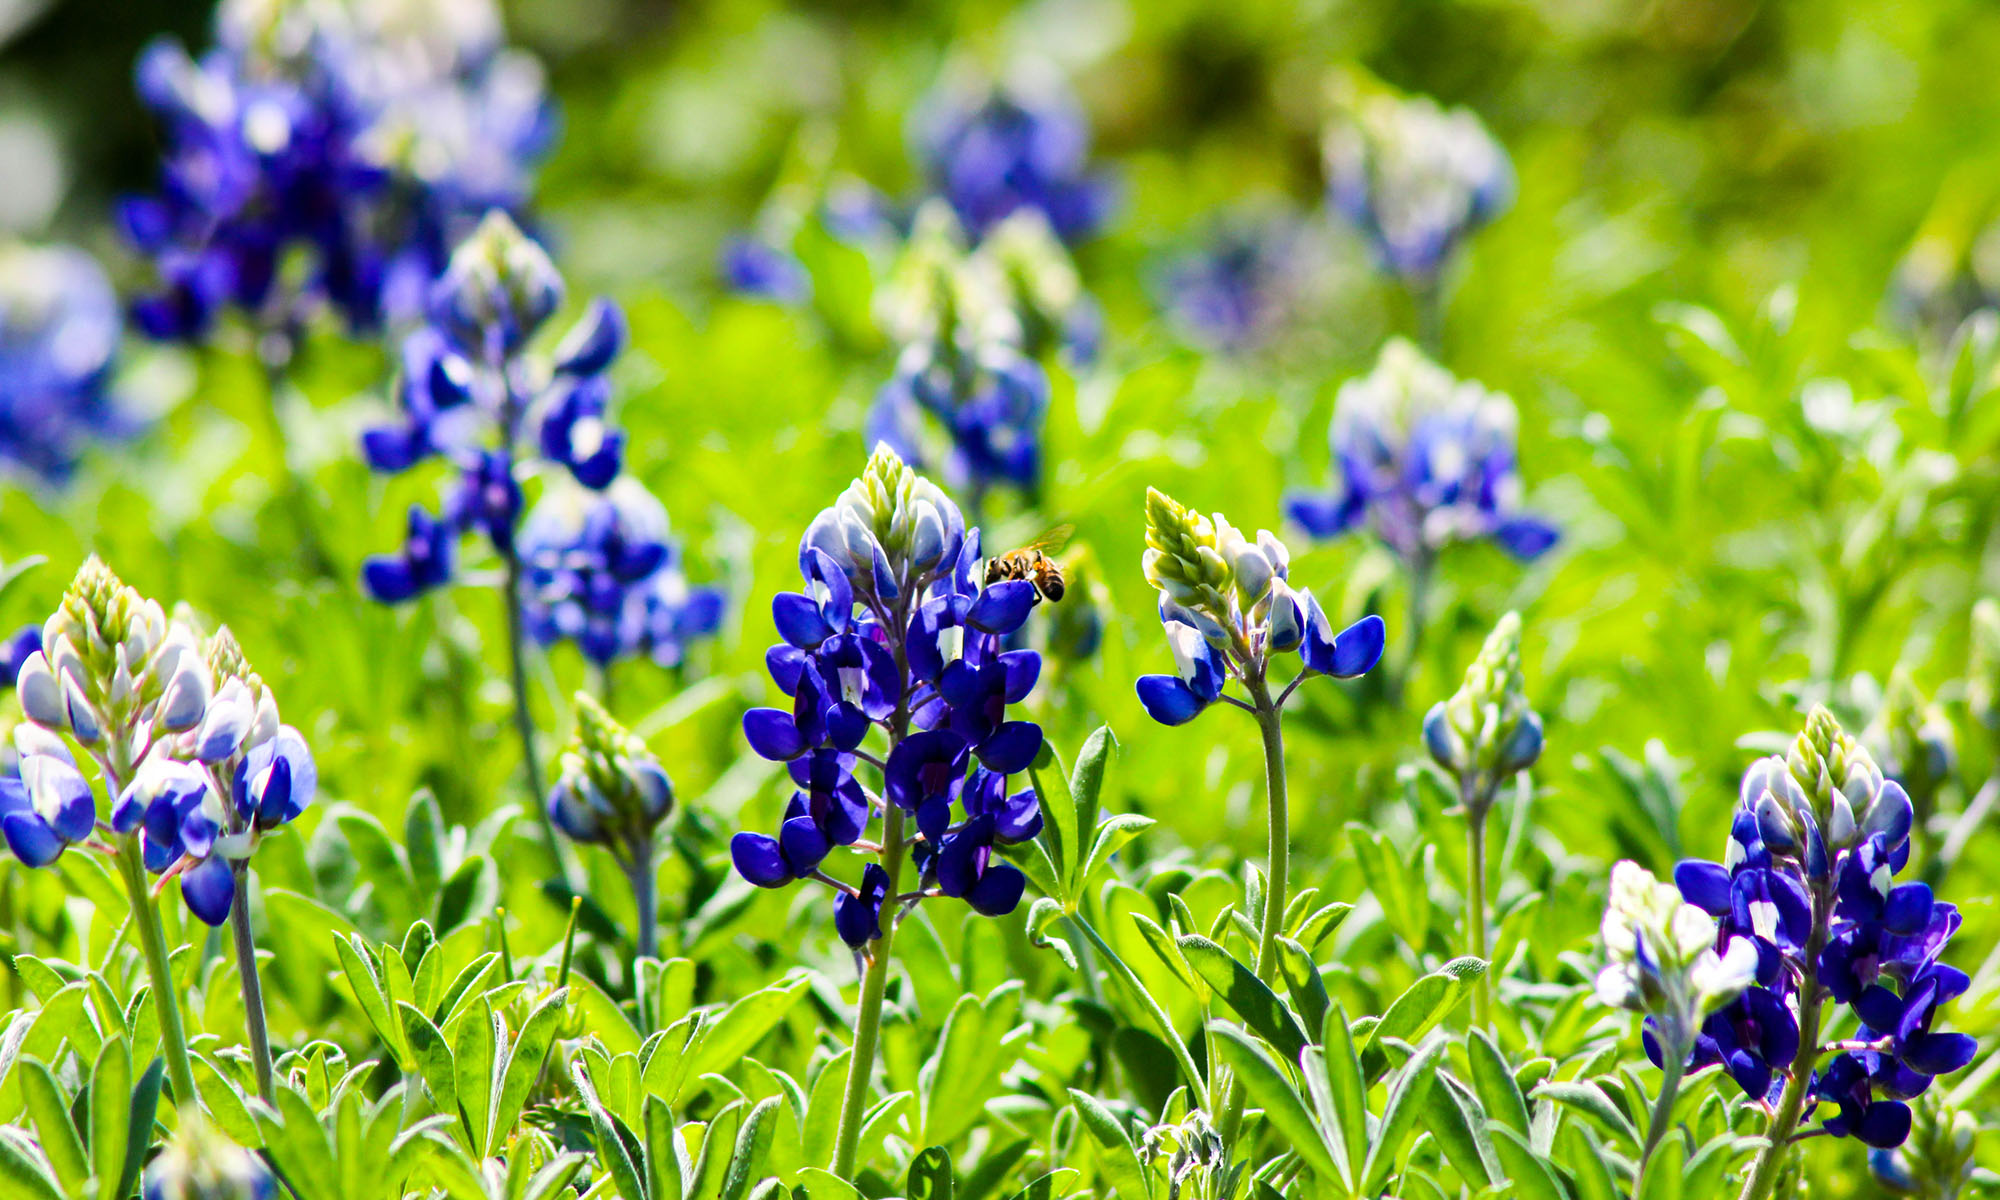 NATIVE PLANT SOCIETY OF TEXAS – CLEAR LAKE CHAPTER